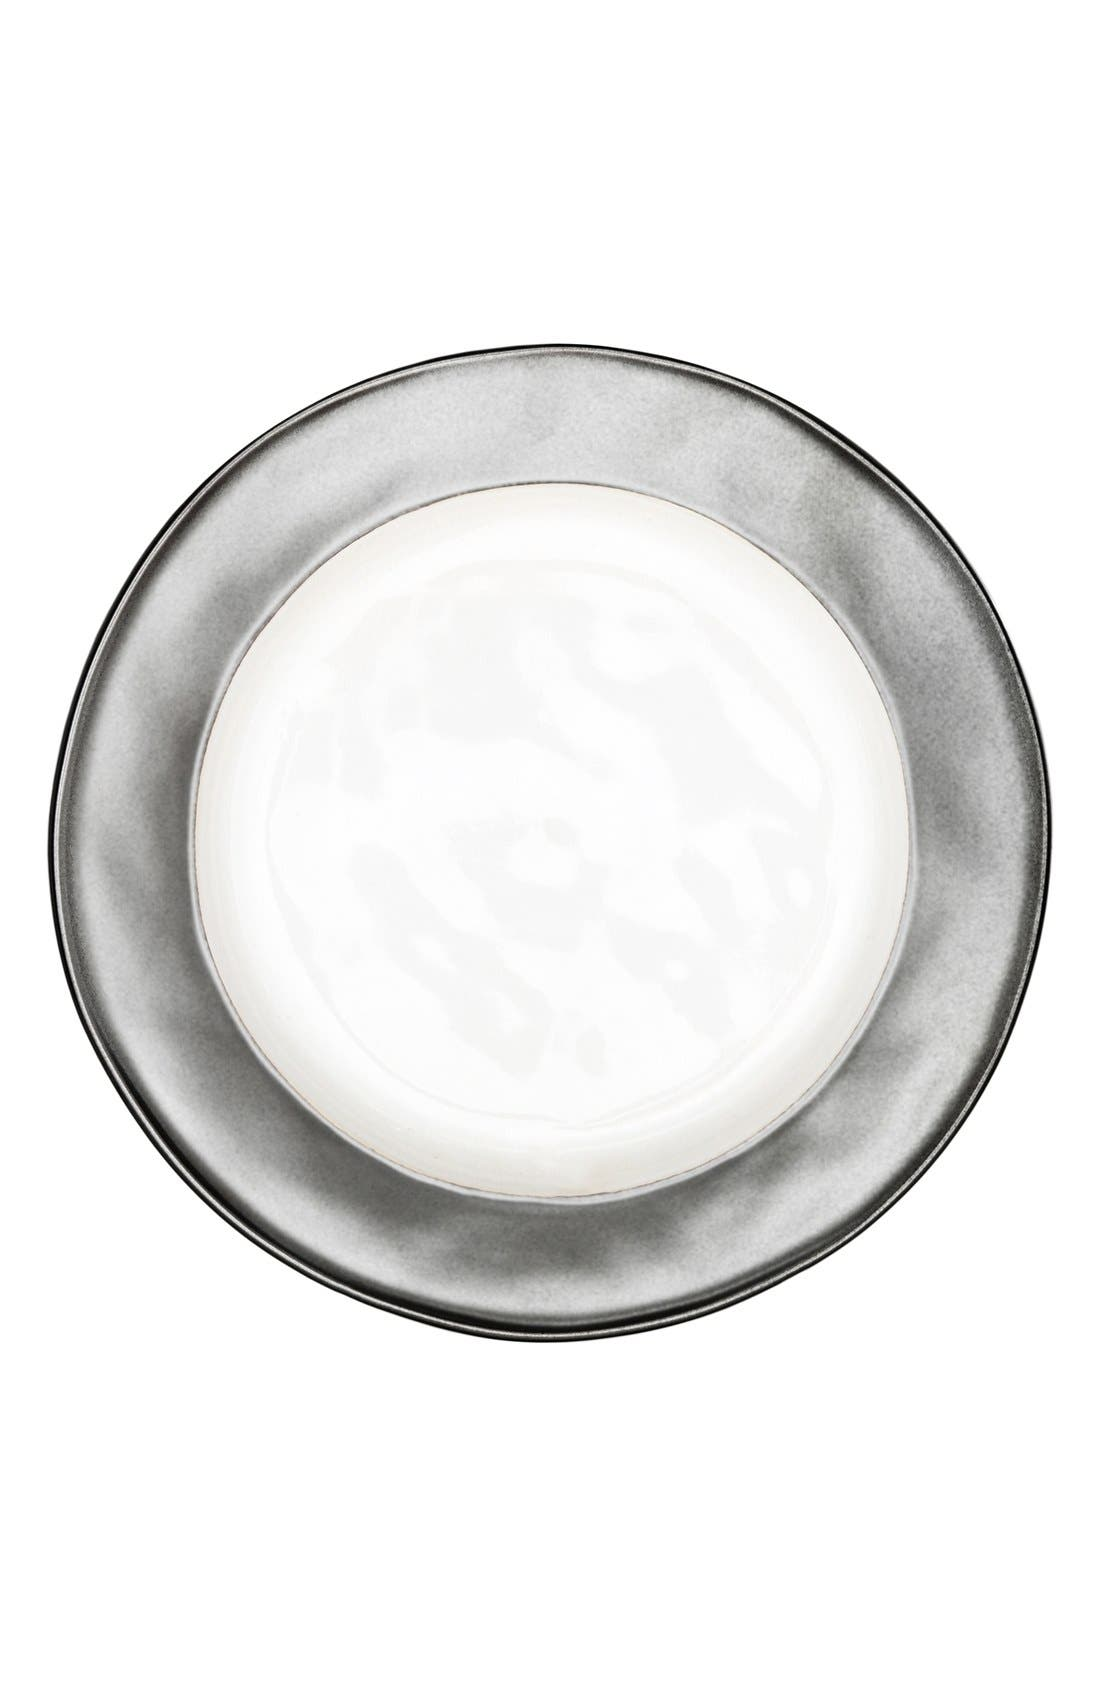 'Emerson' Ceramic Dessert Plate,                             Main thumbnail 1, color,                             Pewter/ White